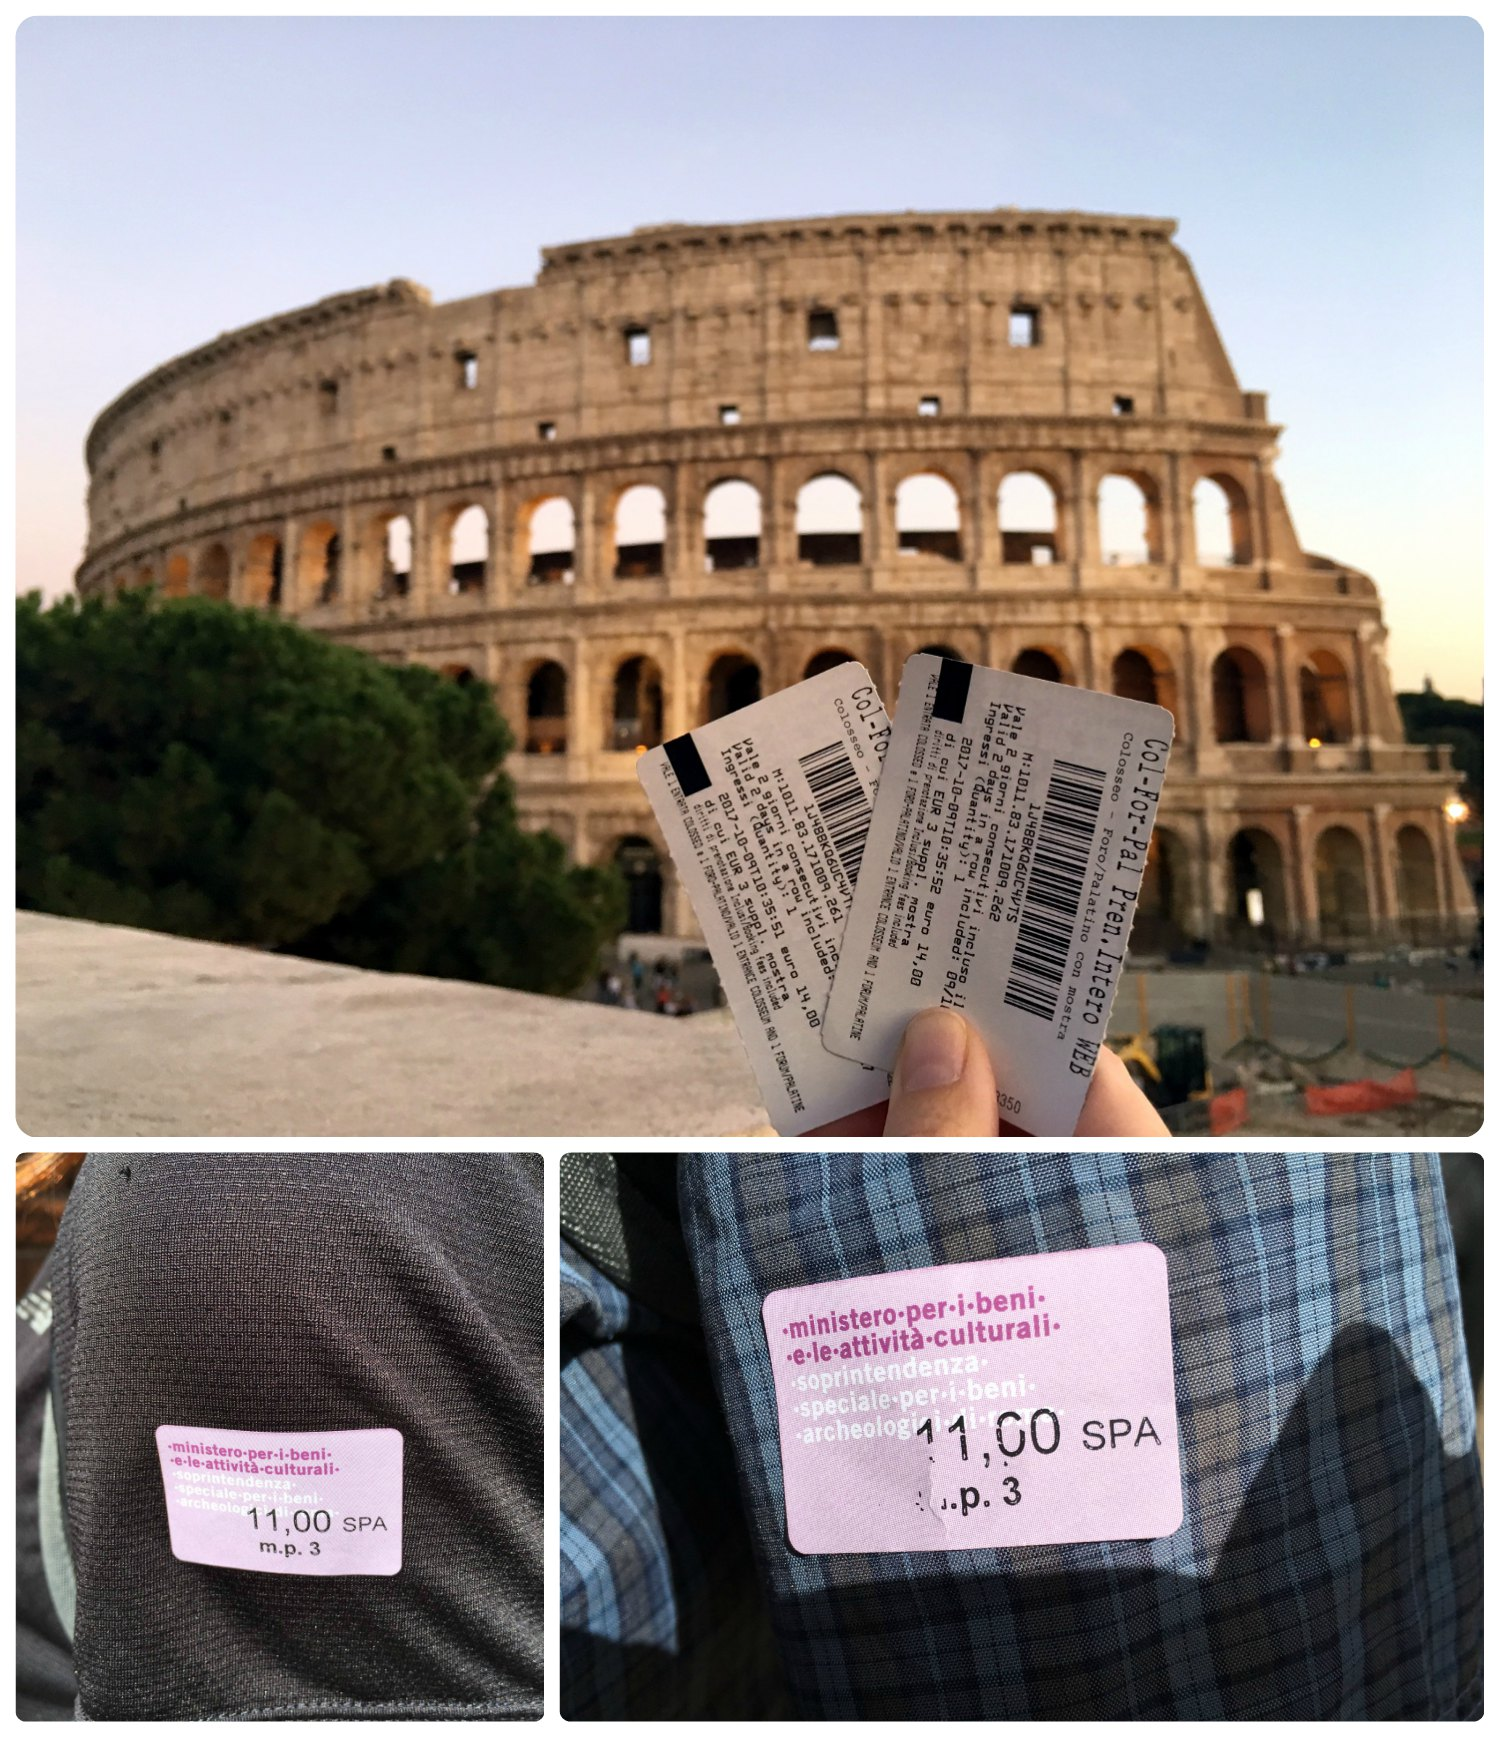 Roman Colosseum entry tickets (top) and our Underground Tour tickets/stickers (bottom).